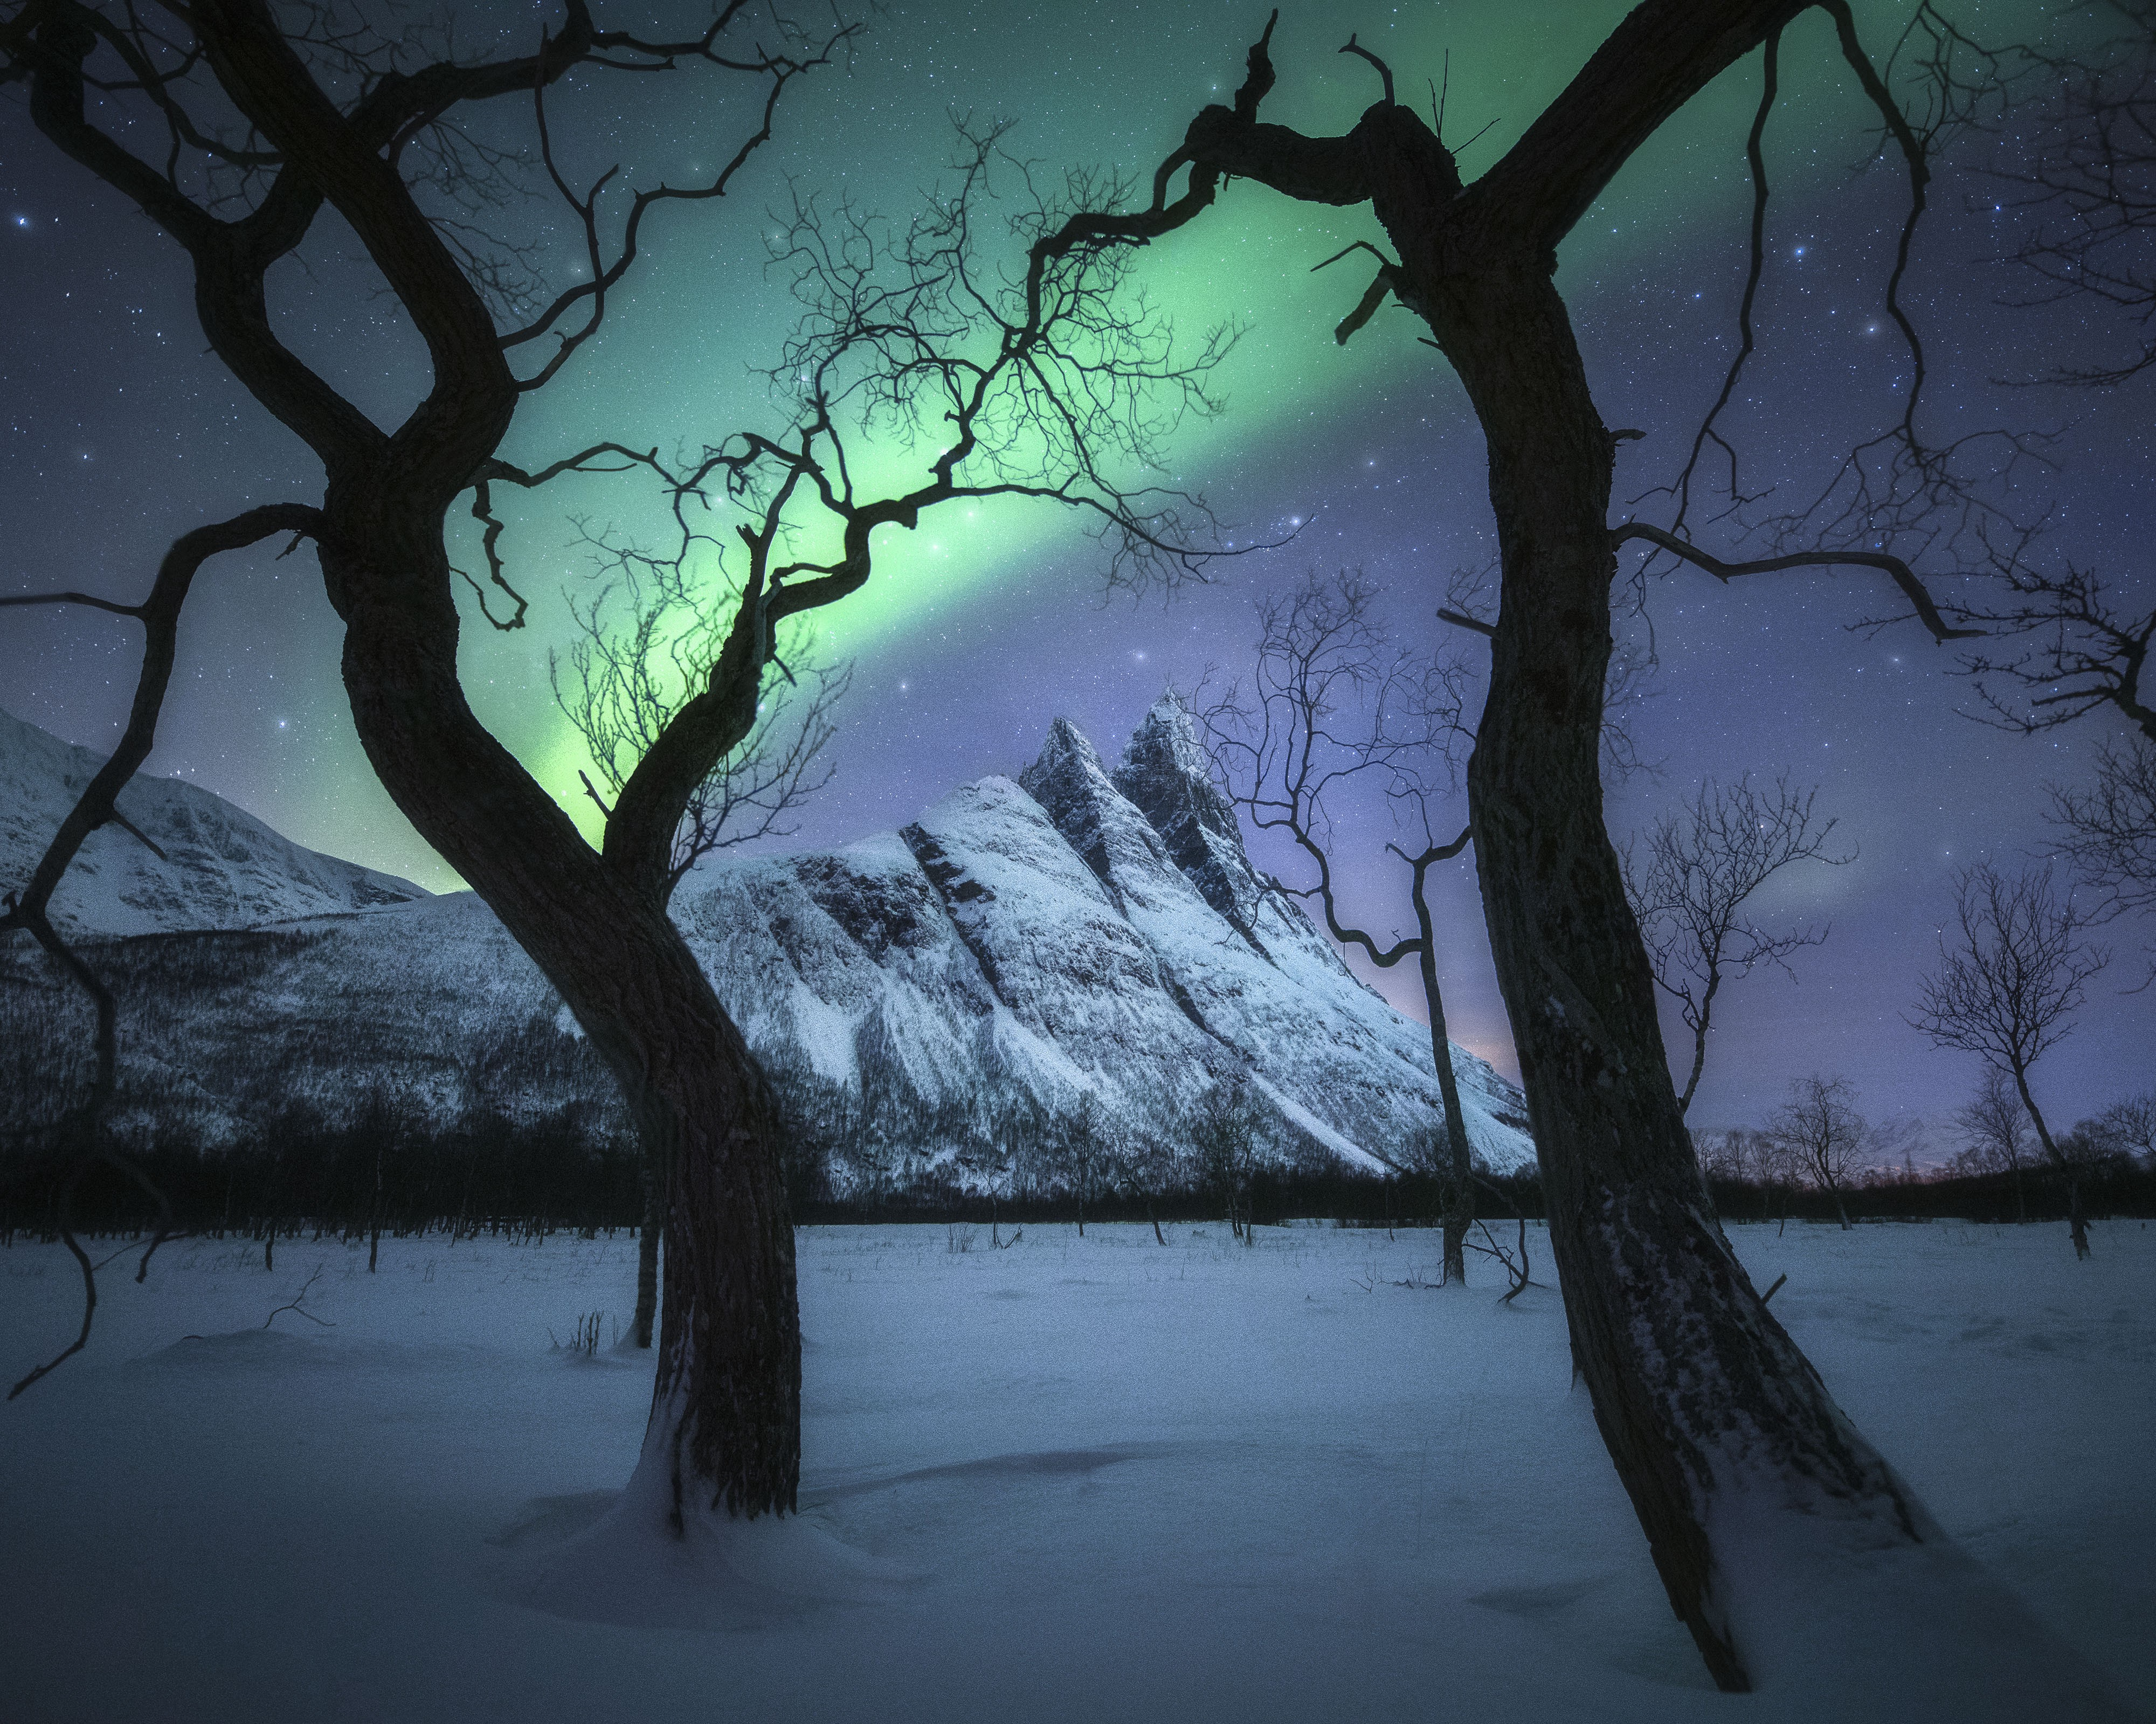 Two bare trees frame a streak of green northern lights flashing above a snowy mountain range